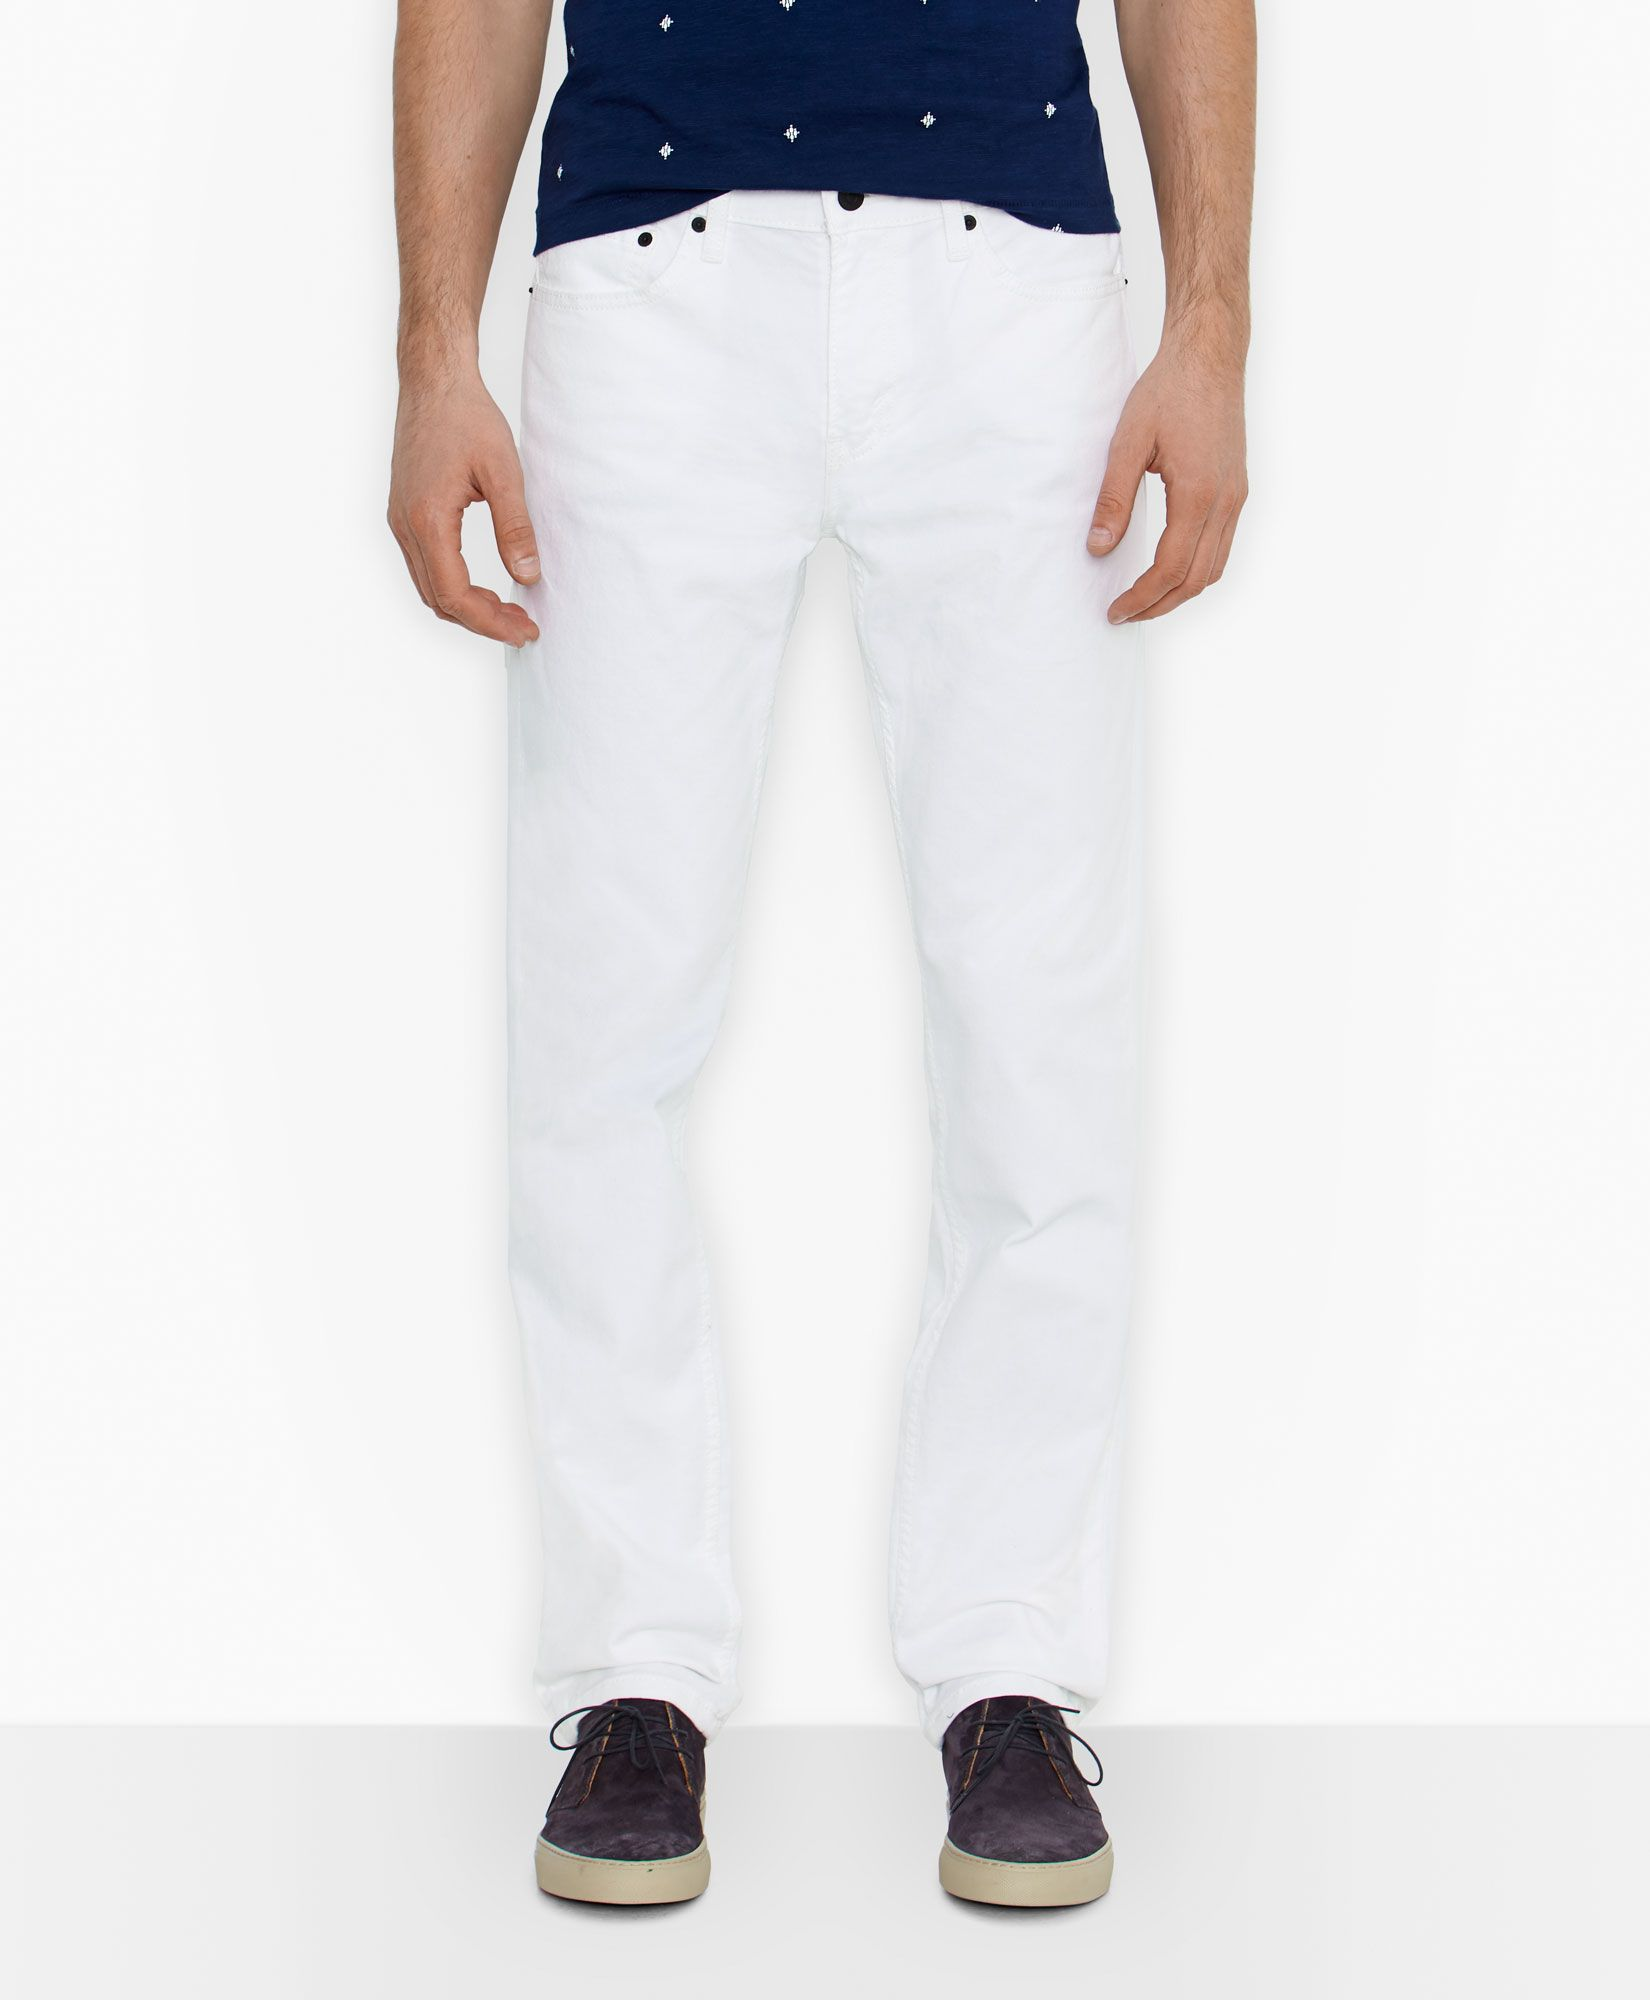 ee8d8910472 511™ Slim Fit Men's Jeans | You've got styyyyle, and that's what I ...